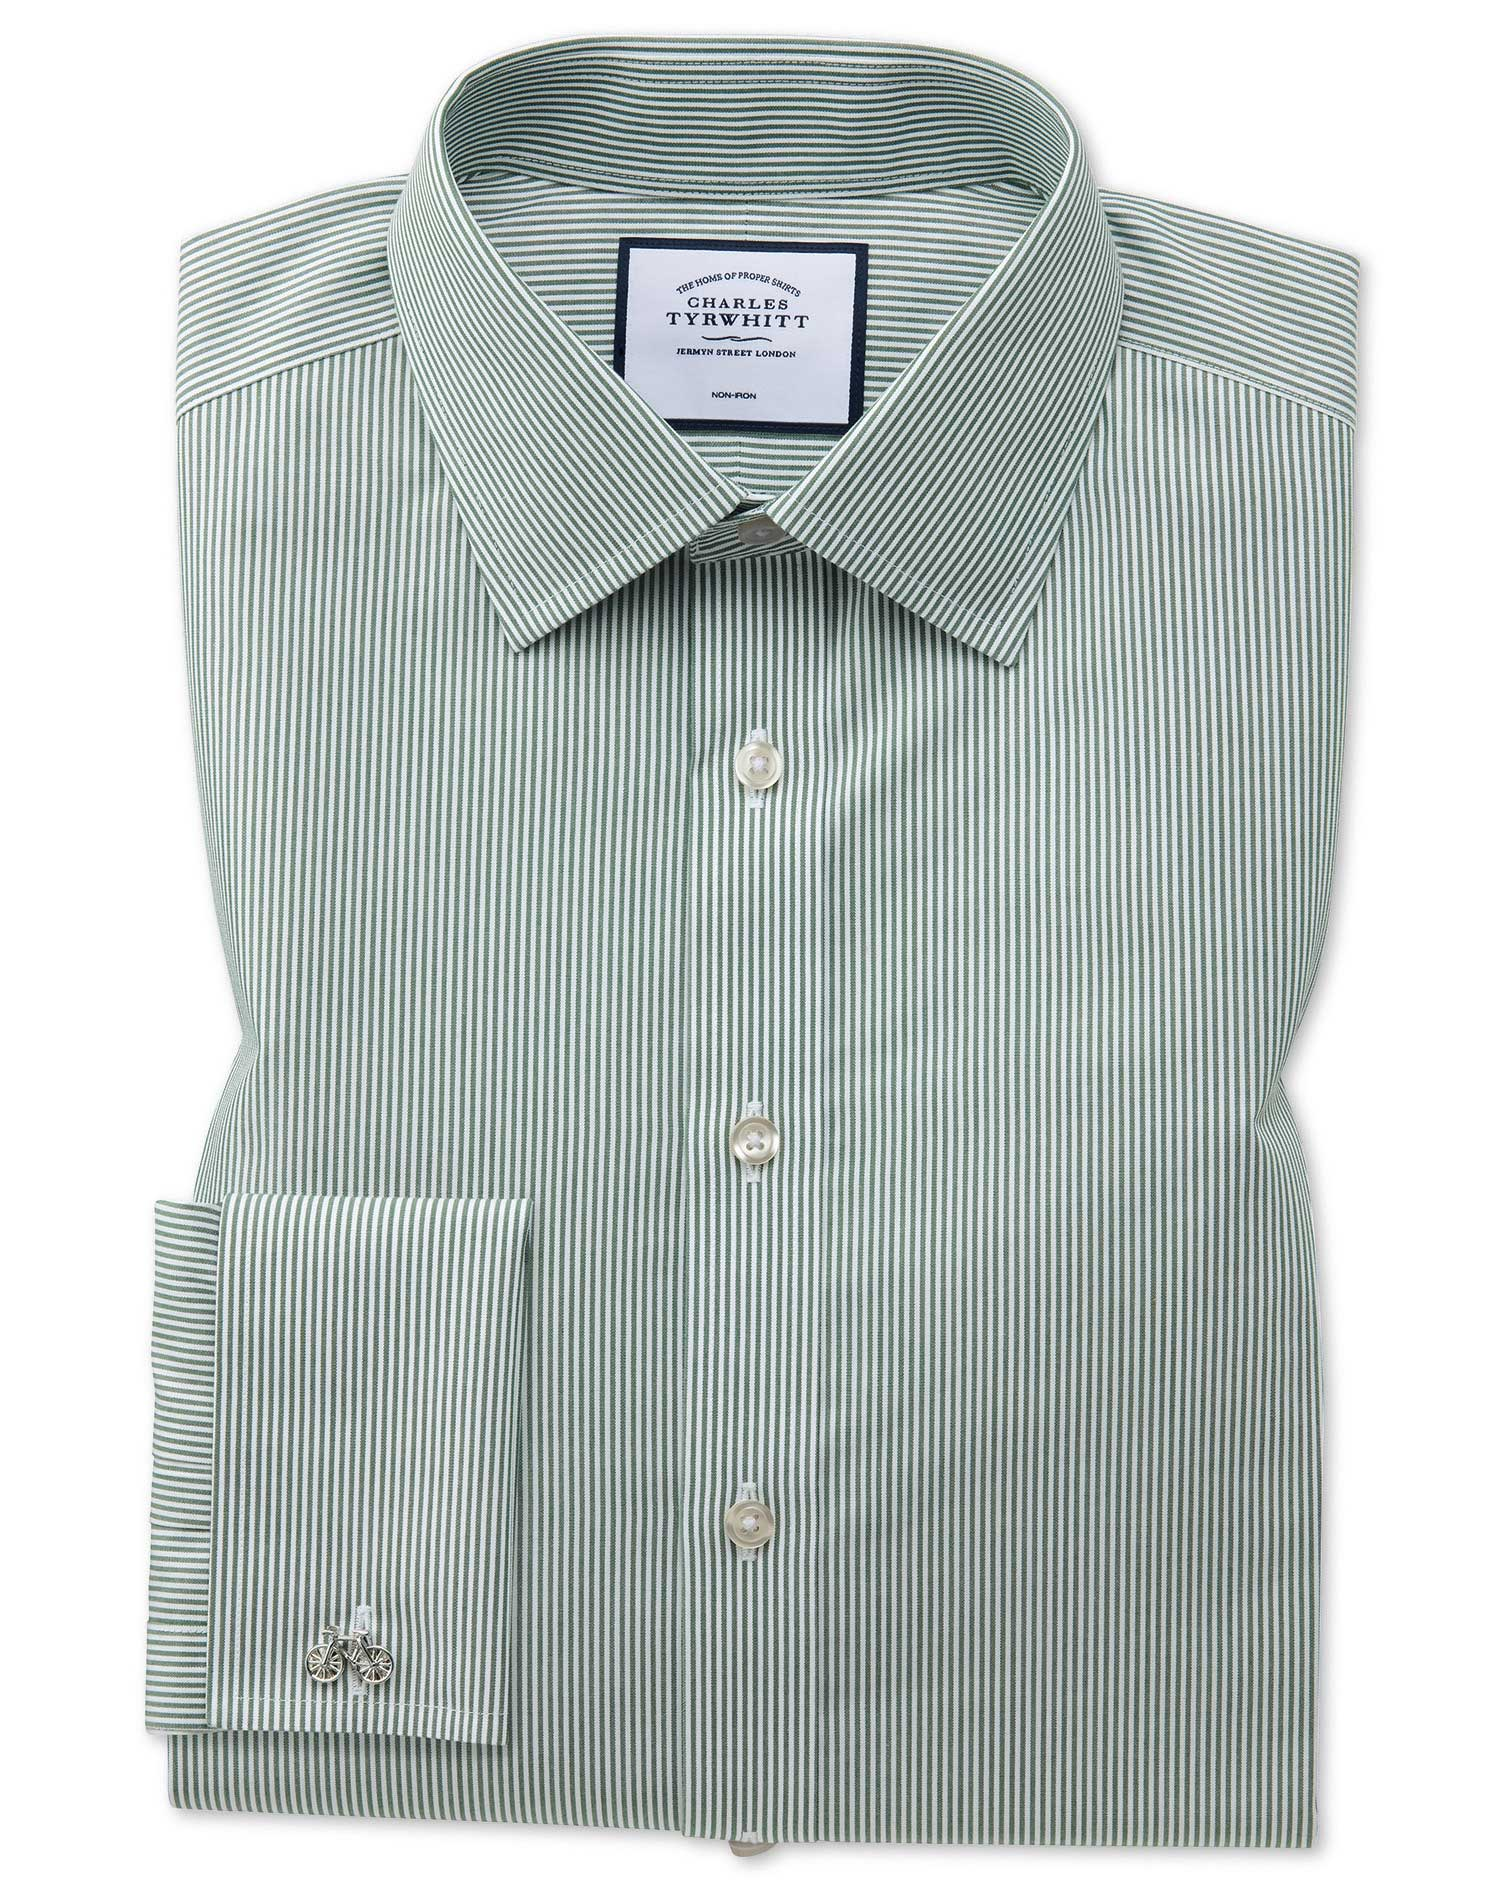 Classic Fit Non-Iron Olive Bengal Stripe Cotton Formal Shirt Double Cuff Size 17/37 by Charles Tyrwhitt from Charles Tyrwhitt